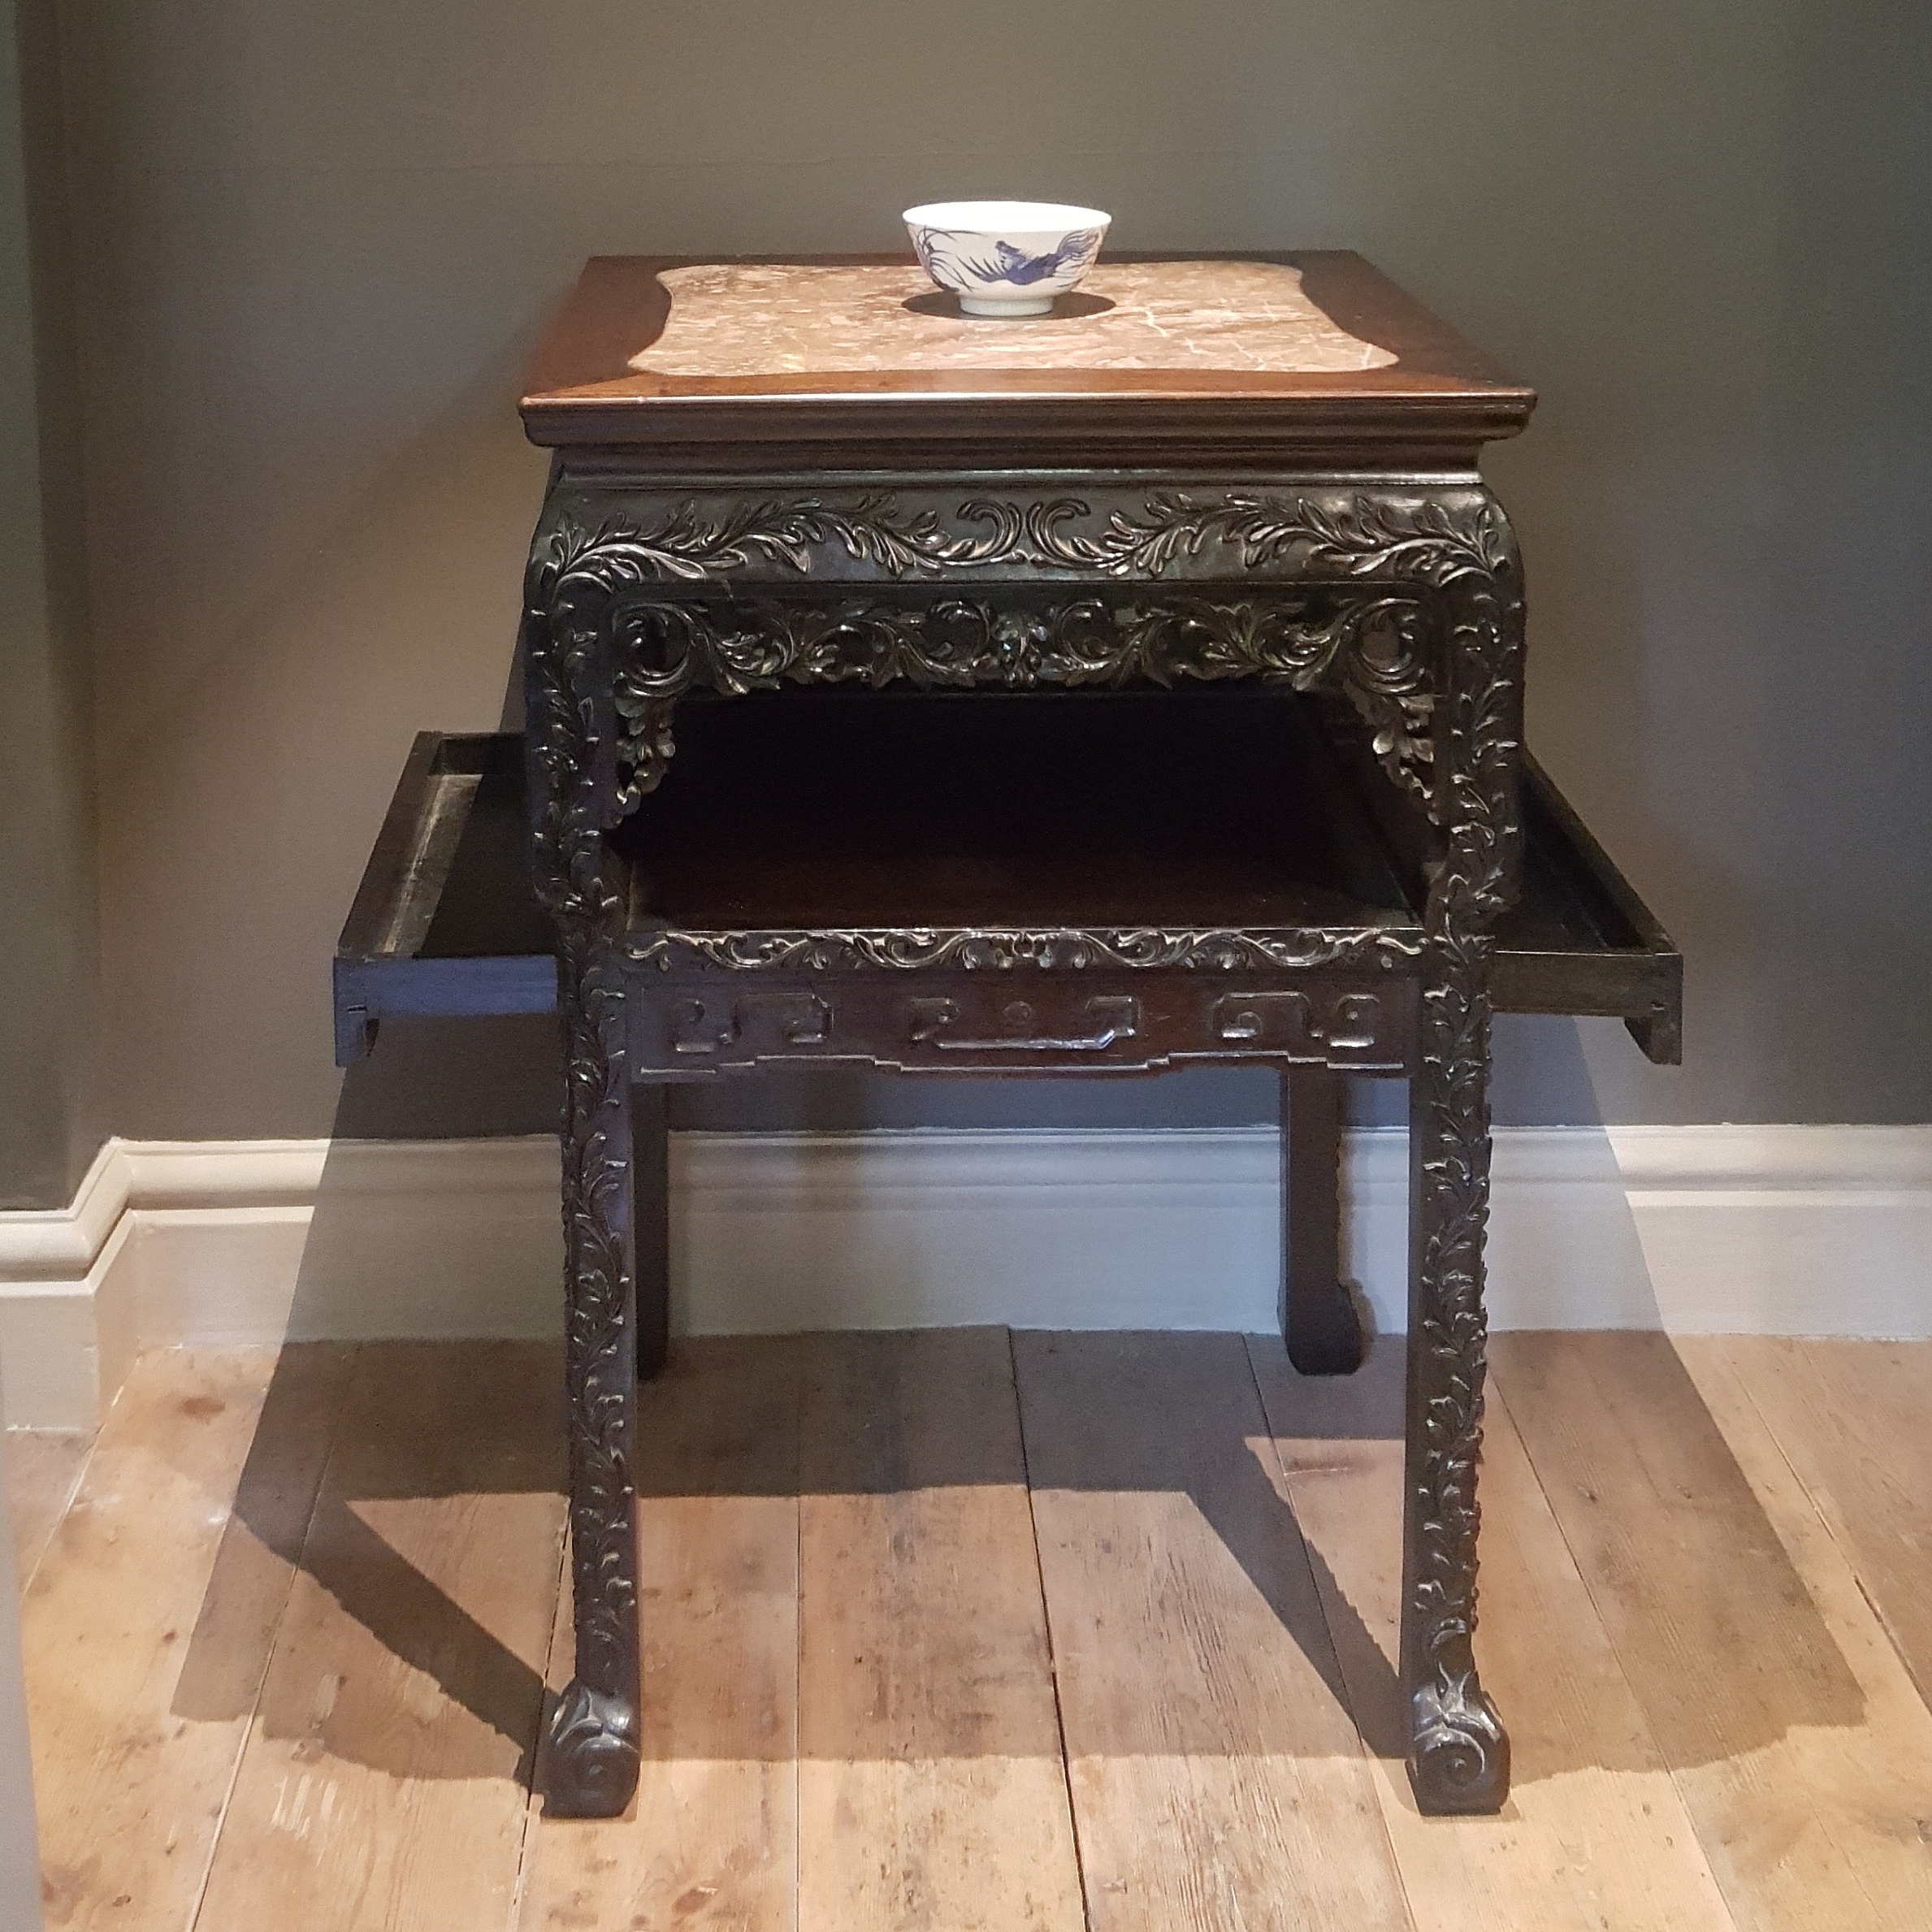 Chinese table with two drawers.